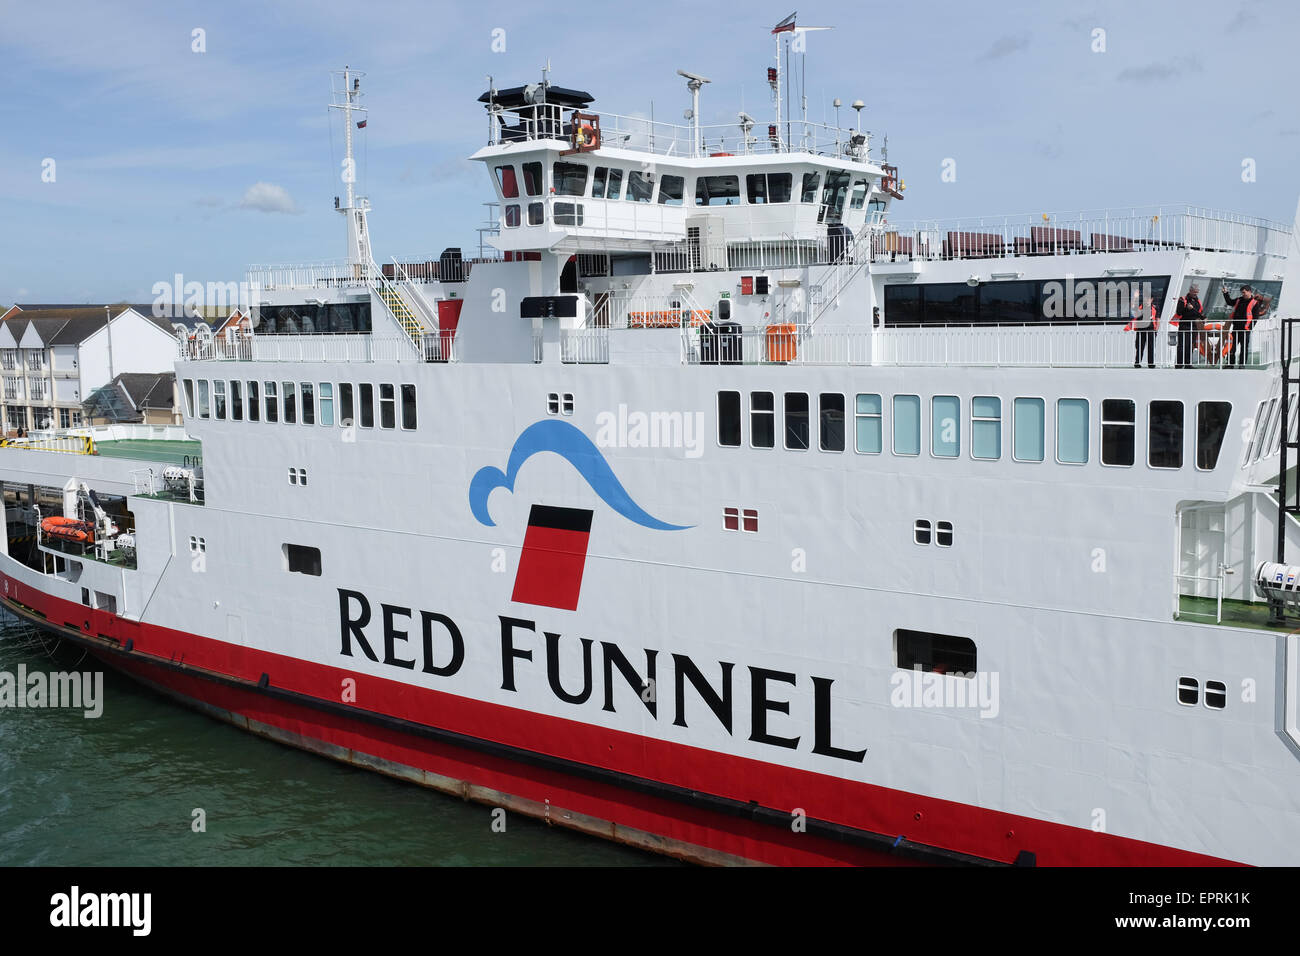 A Red Funnel ferry that sails between Southampton and Cowes on the Isle of Wight, U.K. - Stock Image